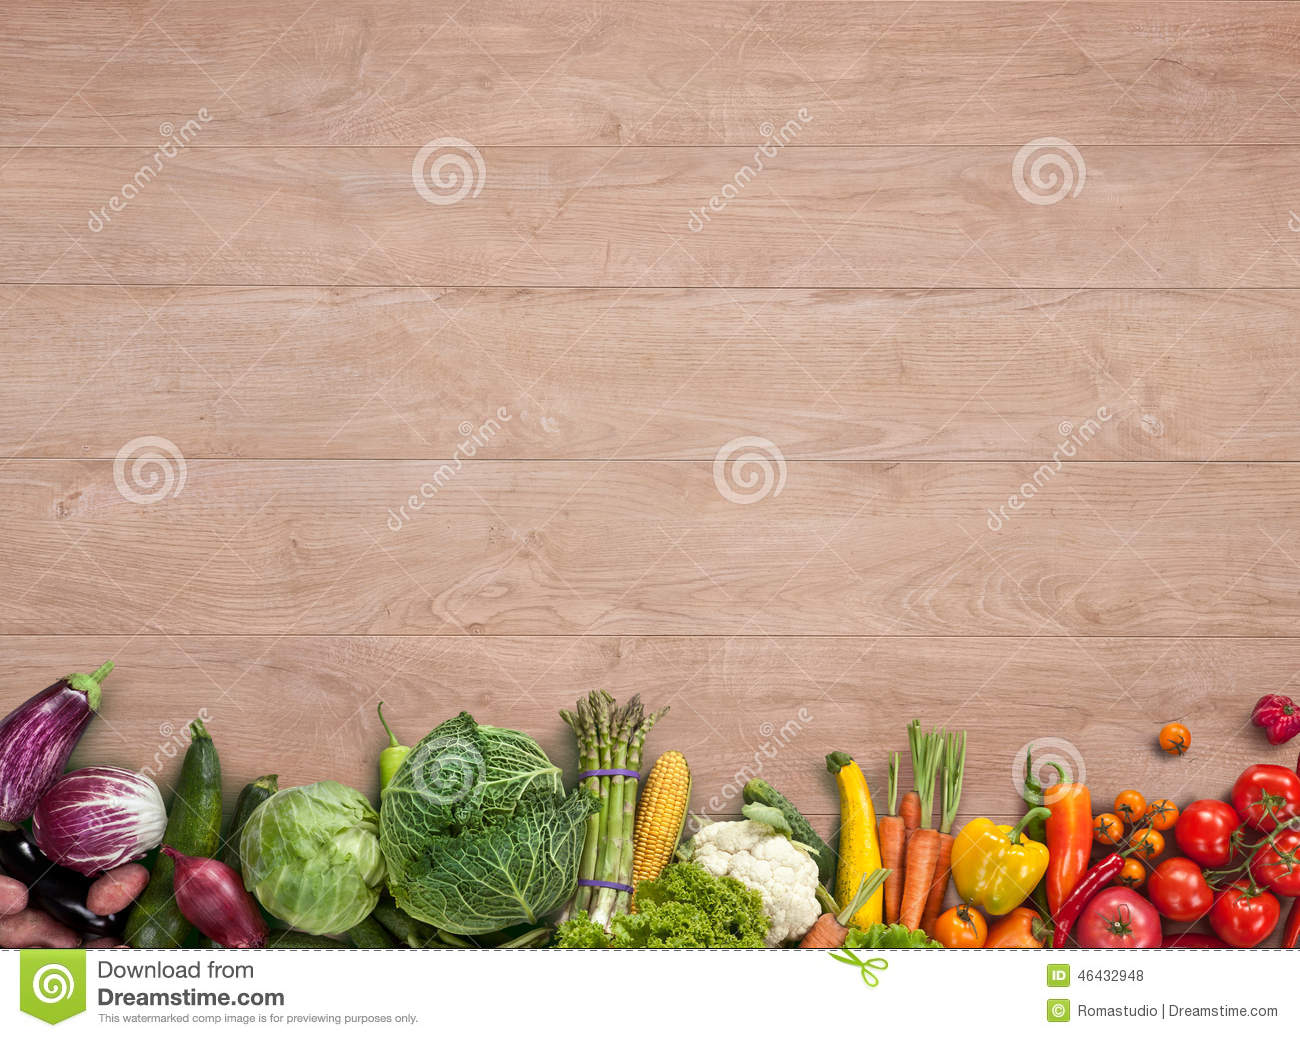 Healthy Food Background Stock Photo - Image: 46432948